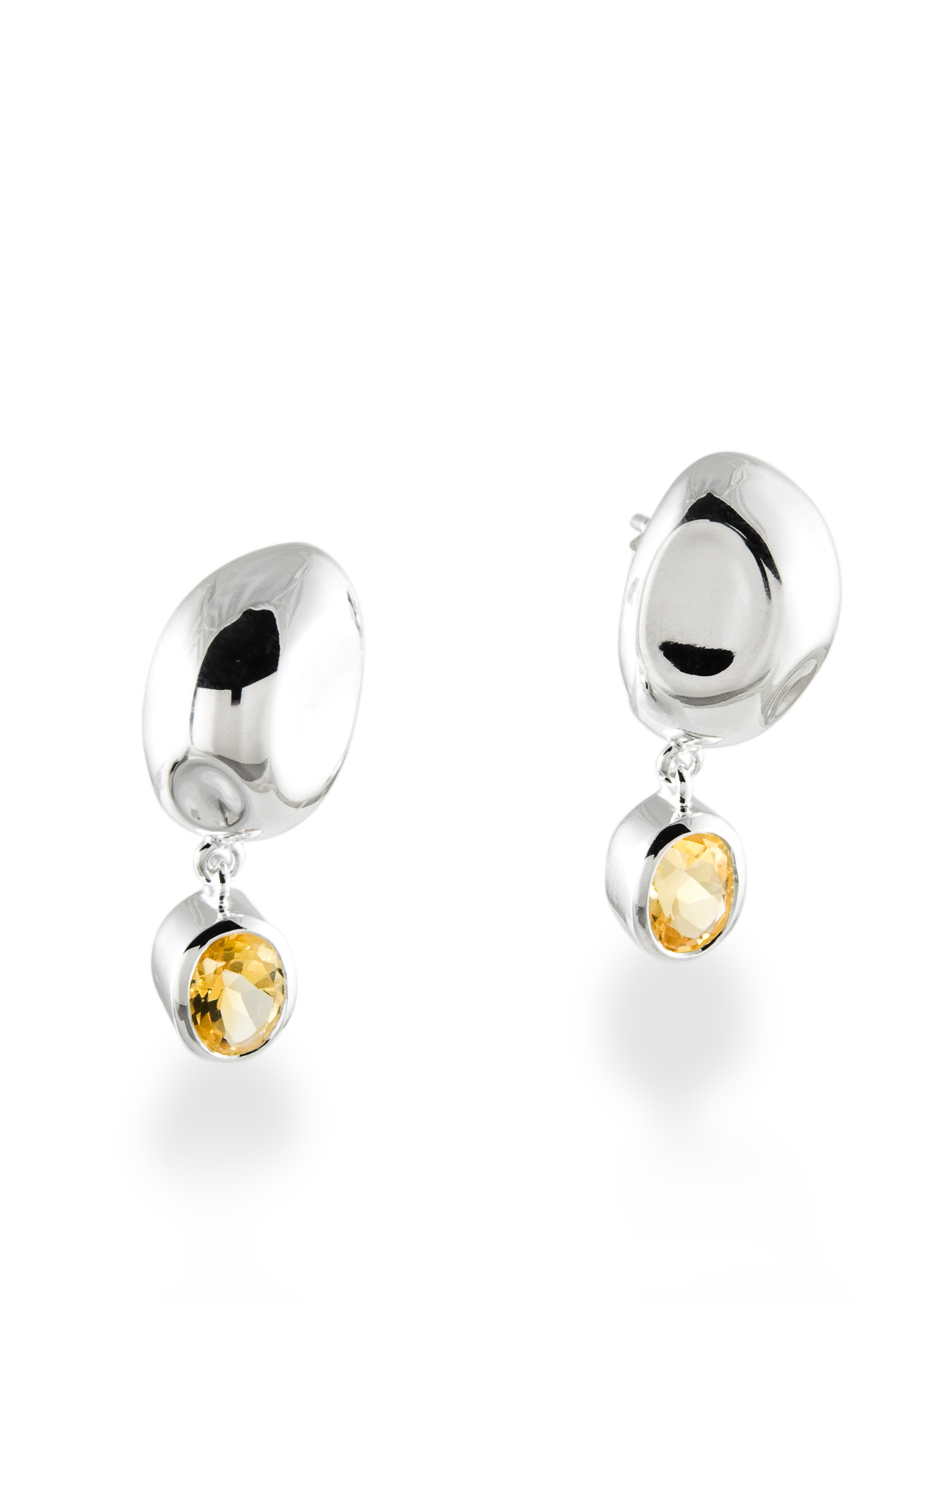 Zina Touchstone Earrings B371-C product image